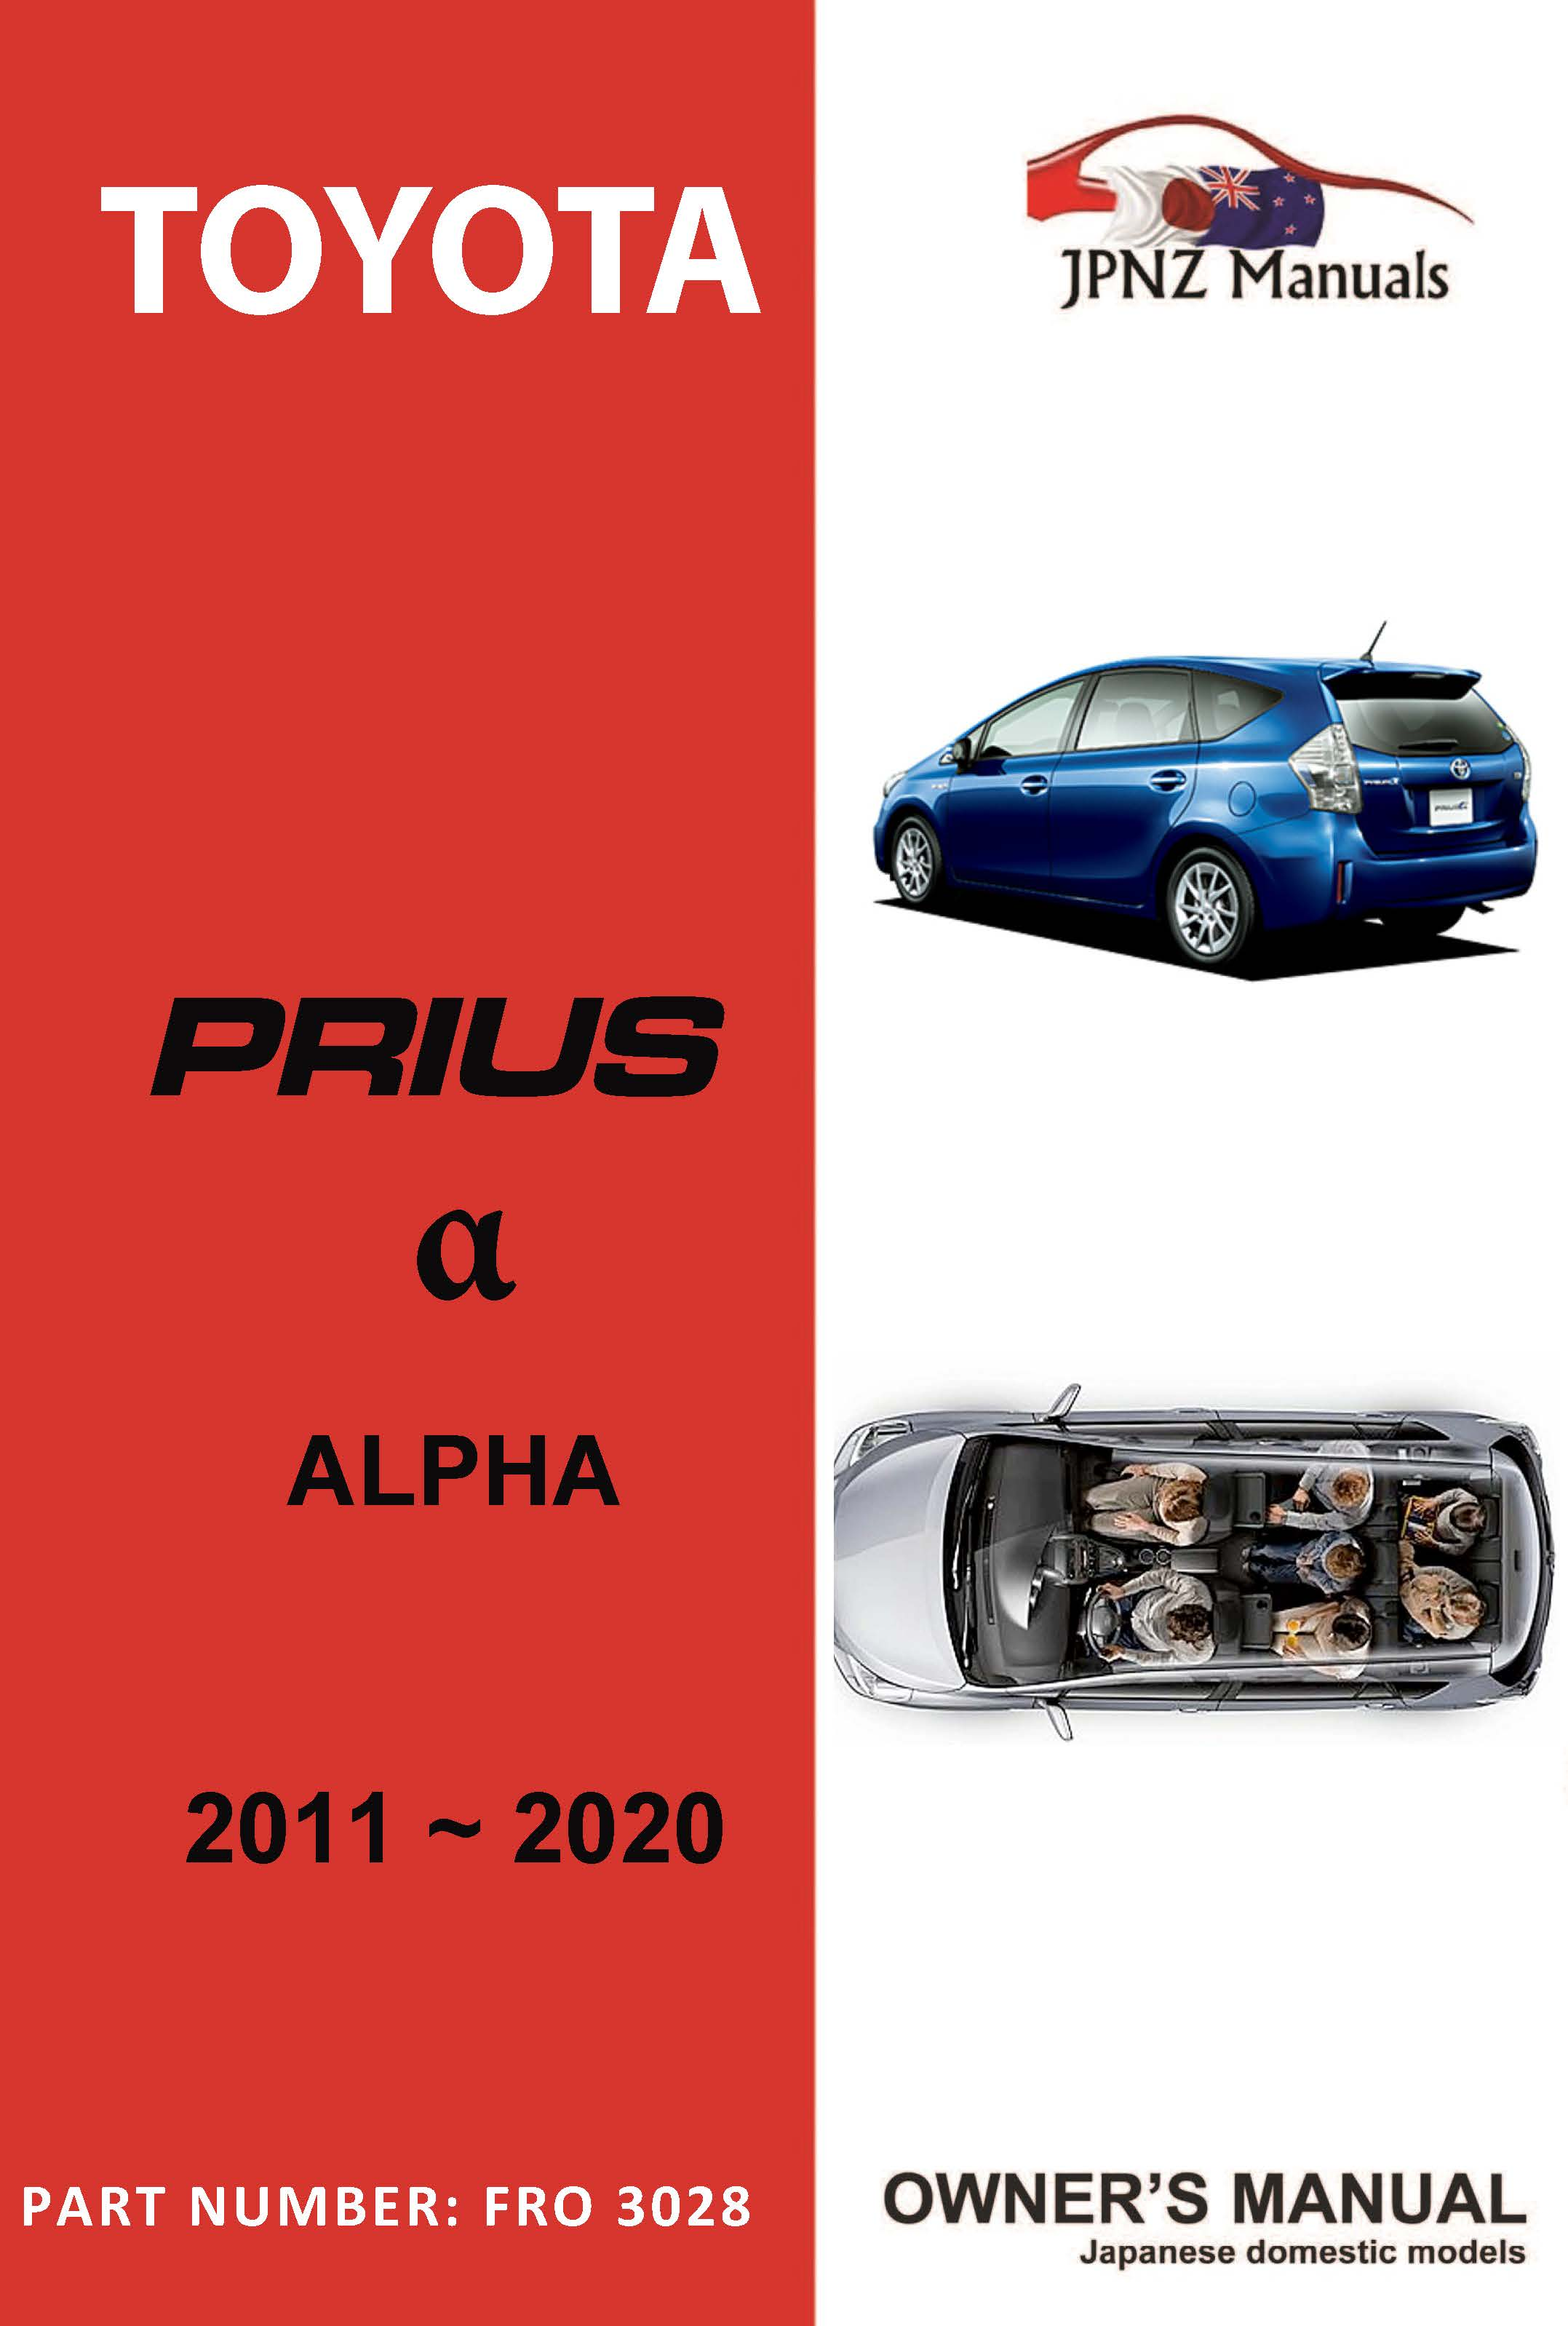 Toyota – Prius α Alpha owners user manual in English | 2011 – 2020